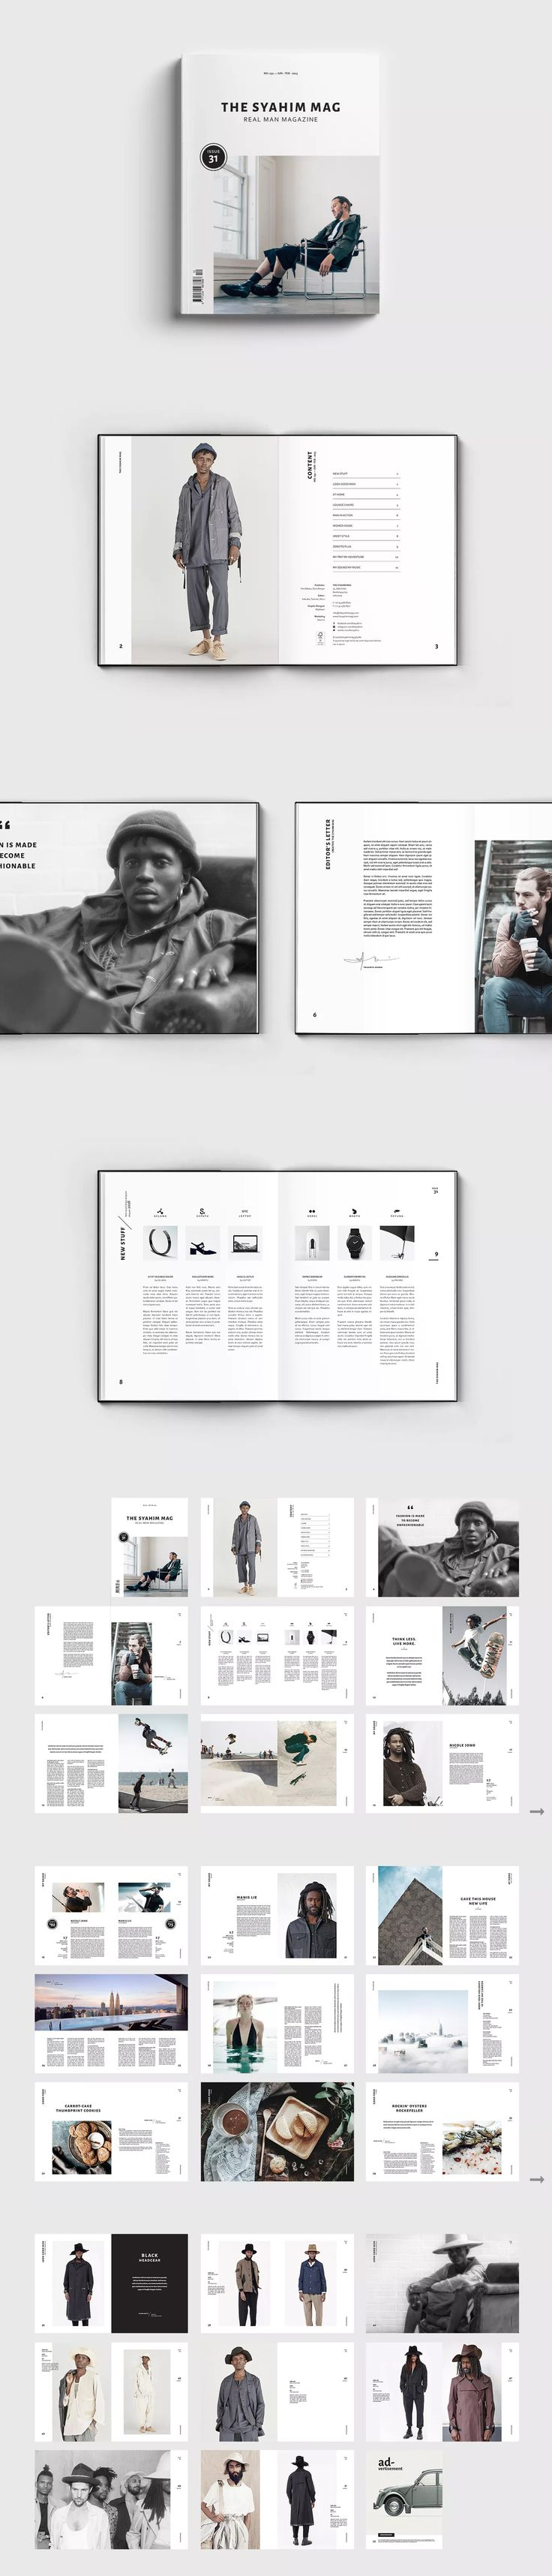 Magazine Template InDesign INDD - A4 & US Letter size